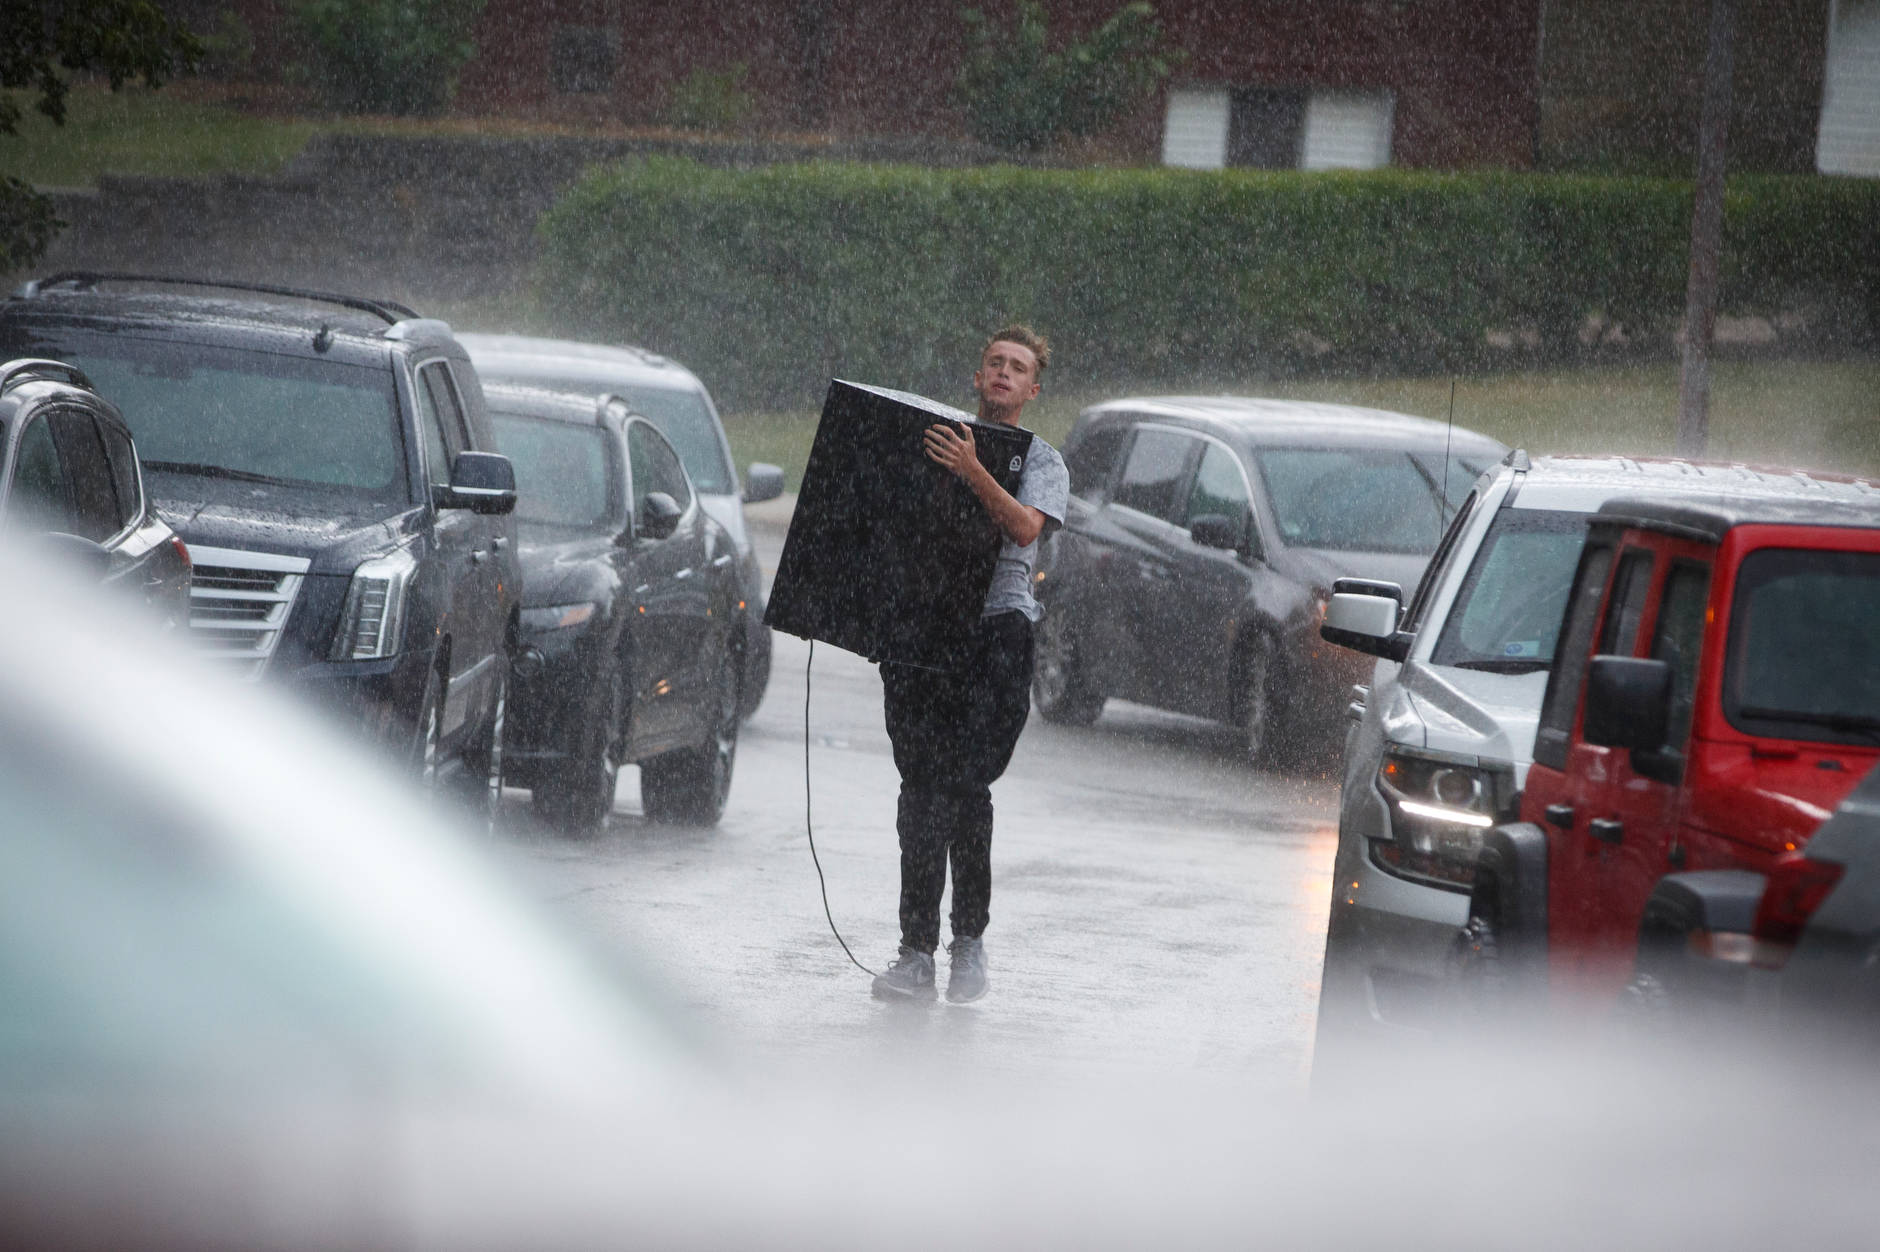 A student carries a mini fridge through a downpour during IU Bloomington move-in at Forest Quad on Tuesday, Aug. 20, 2019. (James Brosher/Indiana University)